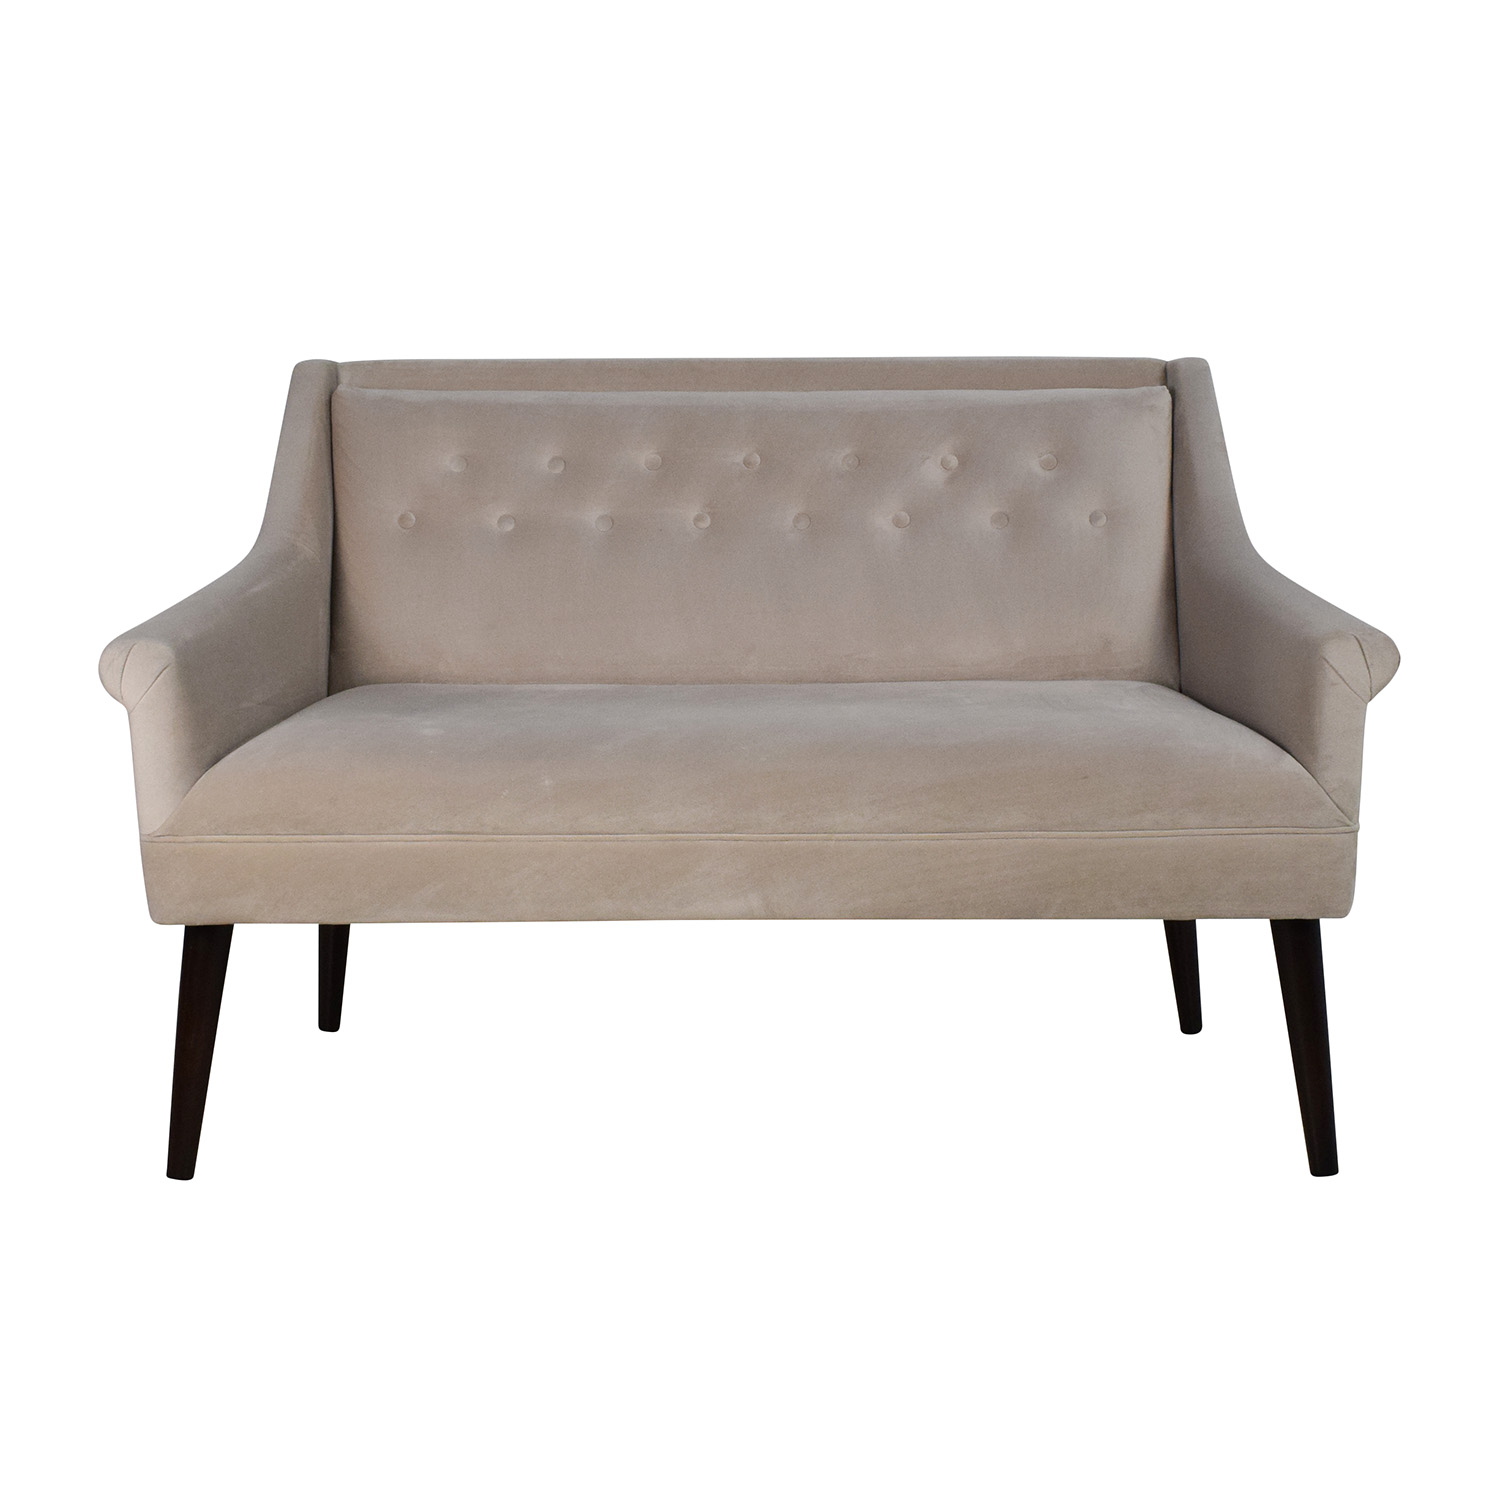 Shop One Kings Lane Bella Tufted Settee One Kings Lane ...